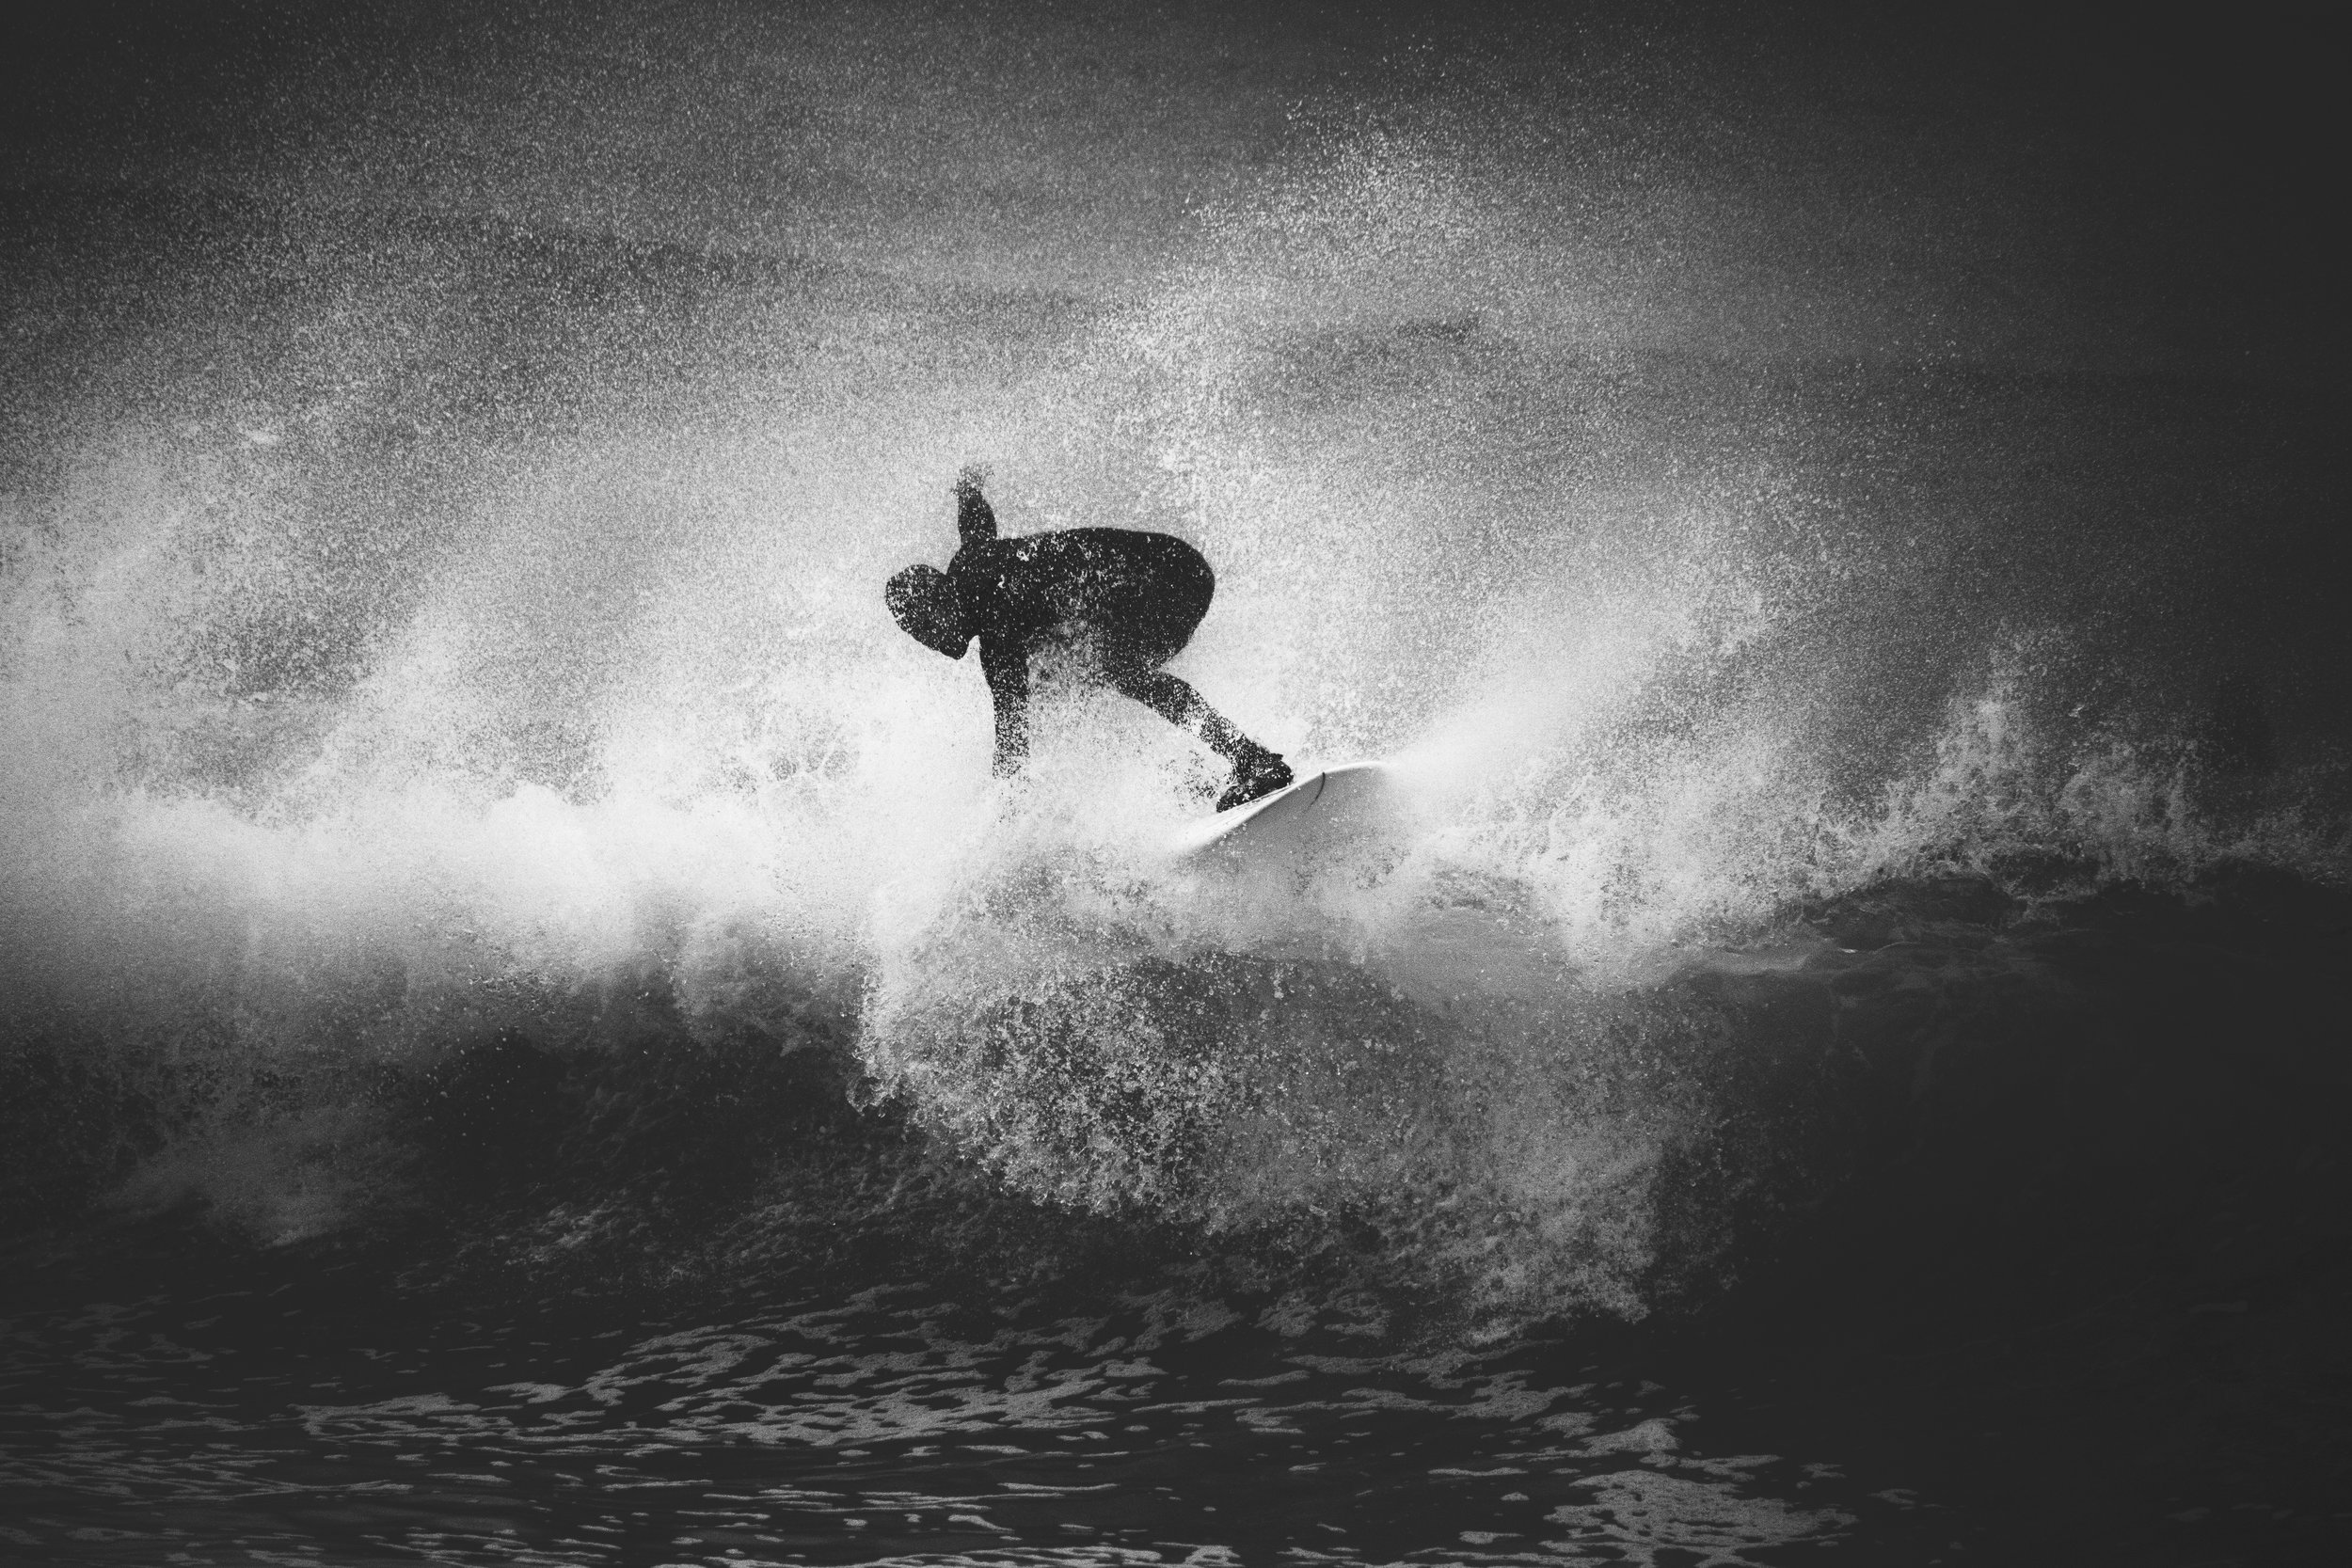 Surfer_Graphic_01.jpg